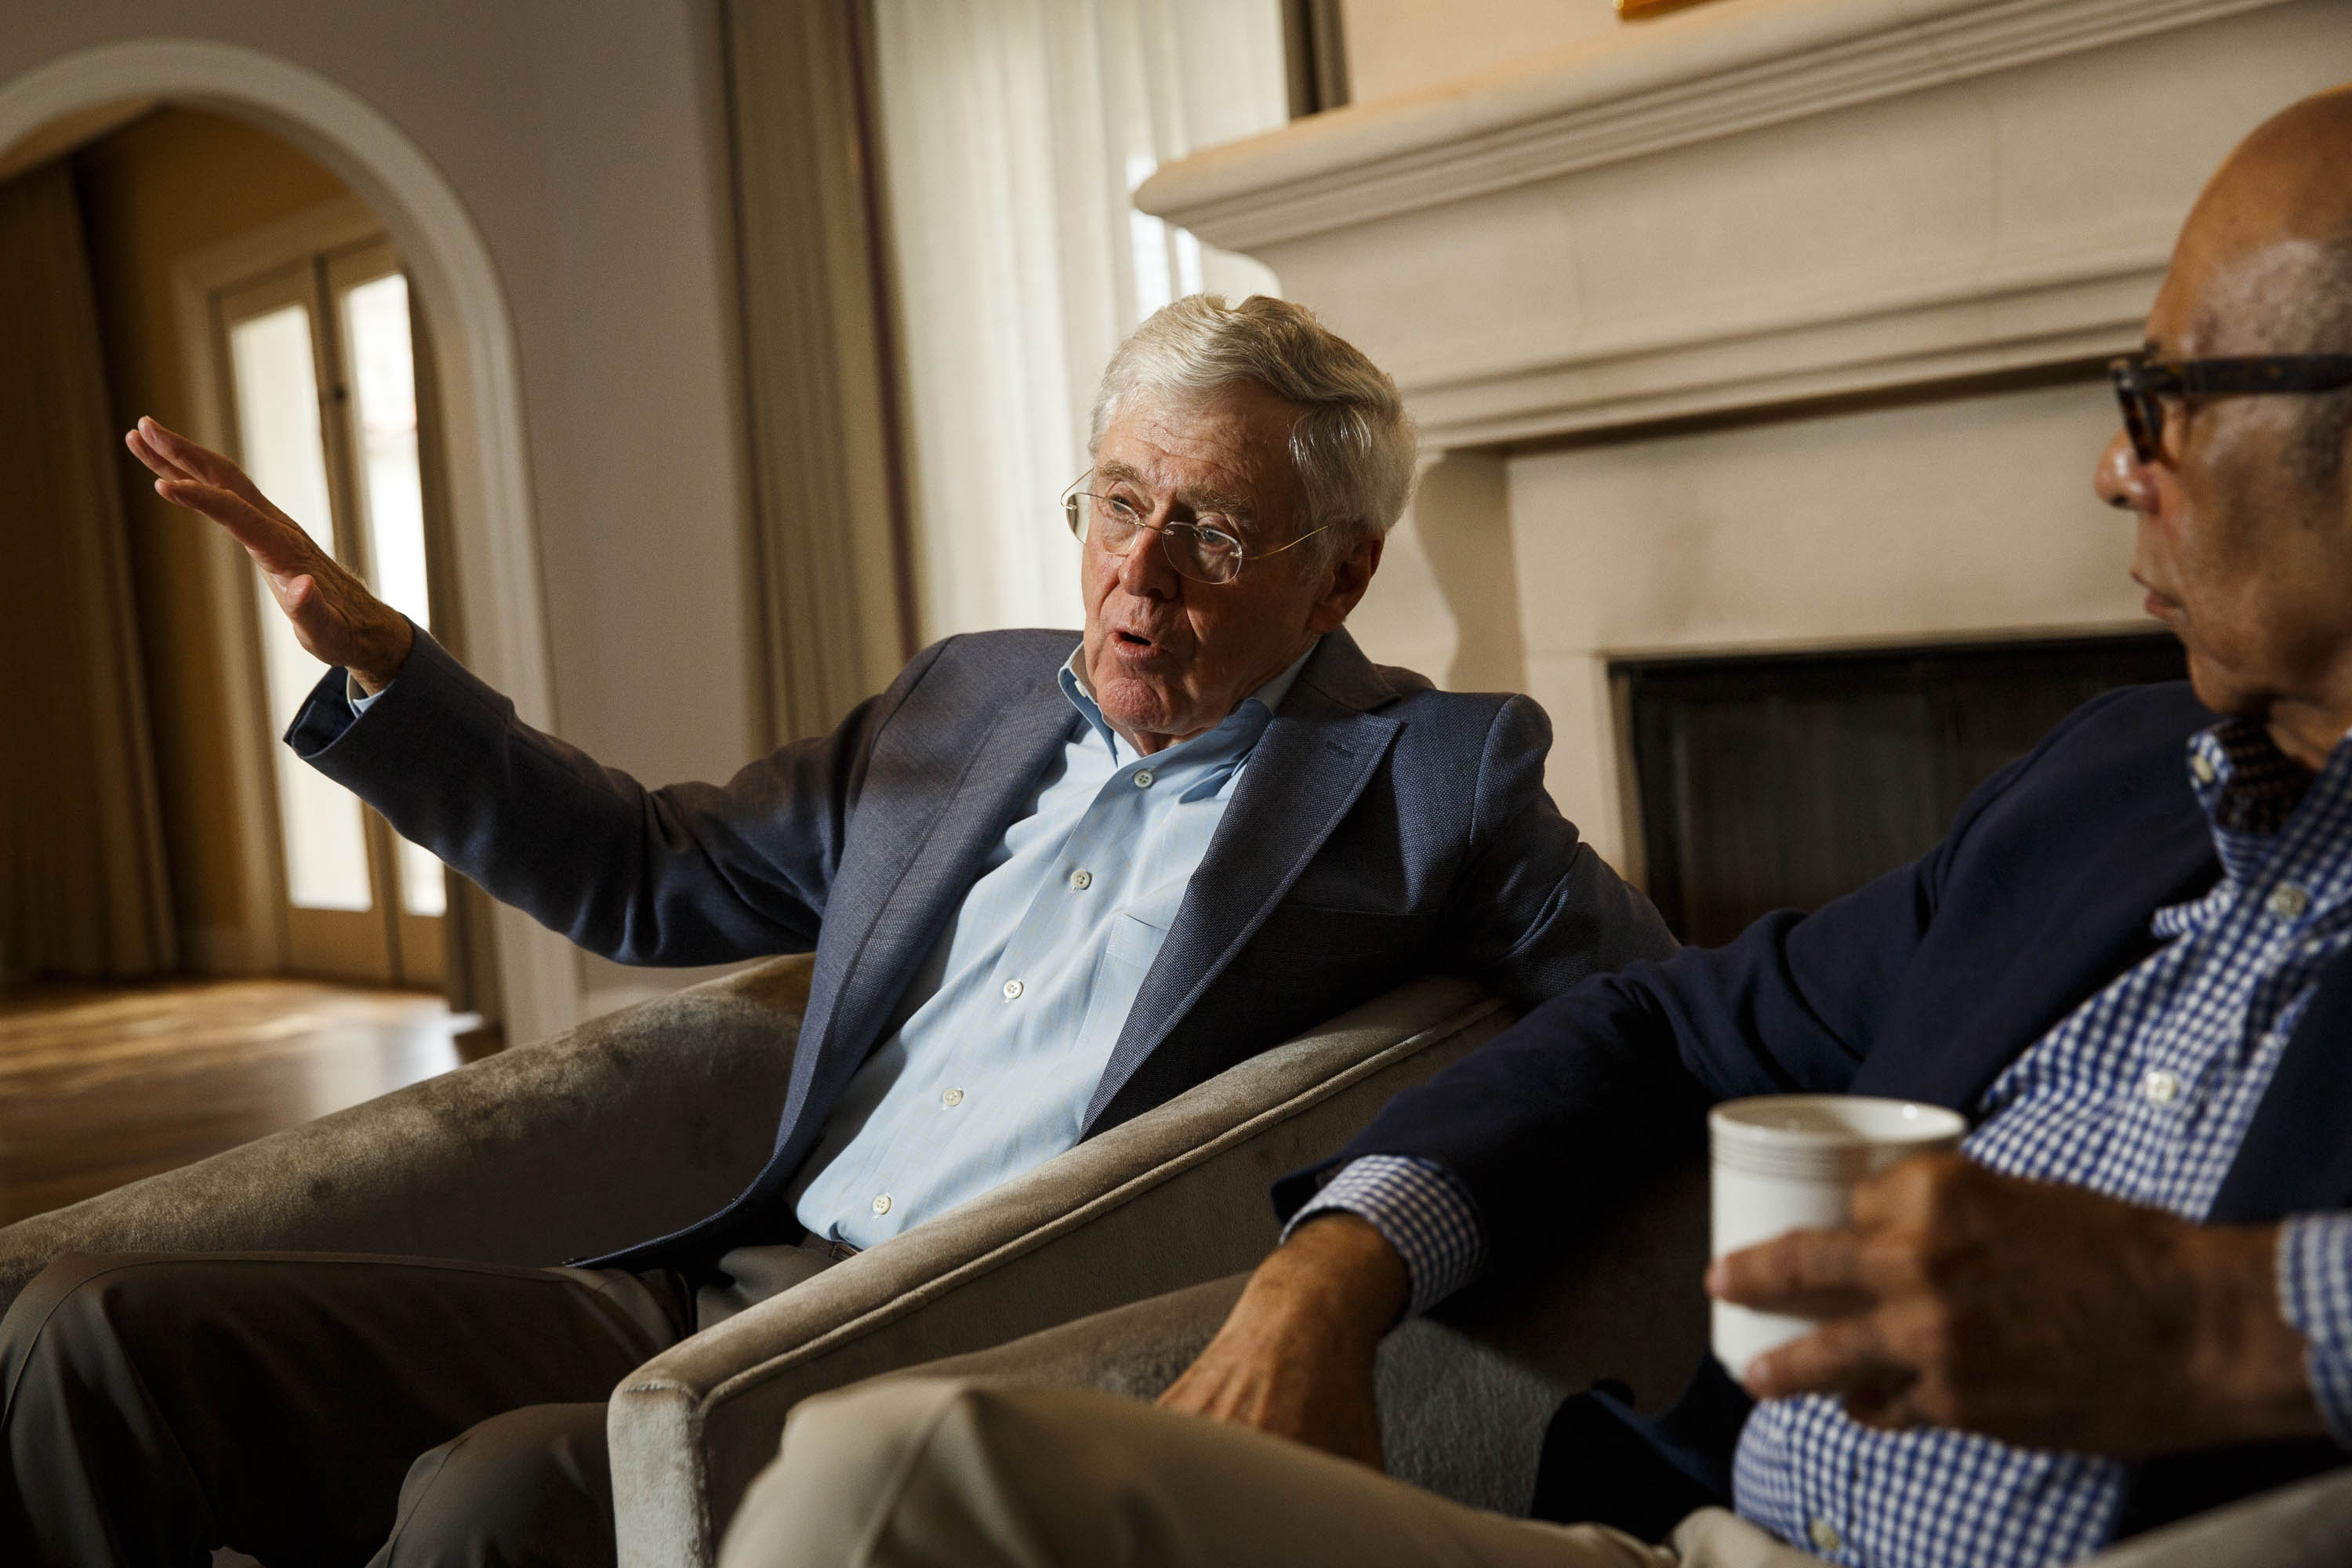 Charles Koch discusses his network's goals at a donor summit in California.